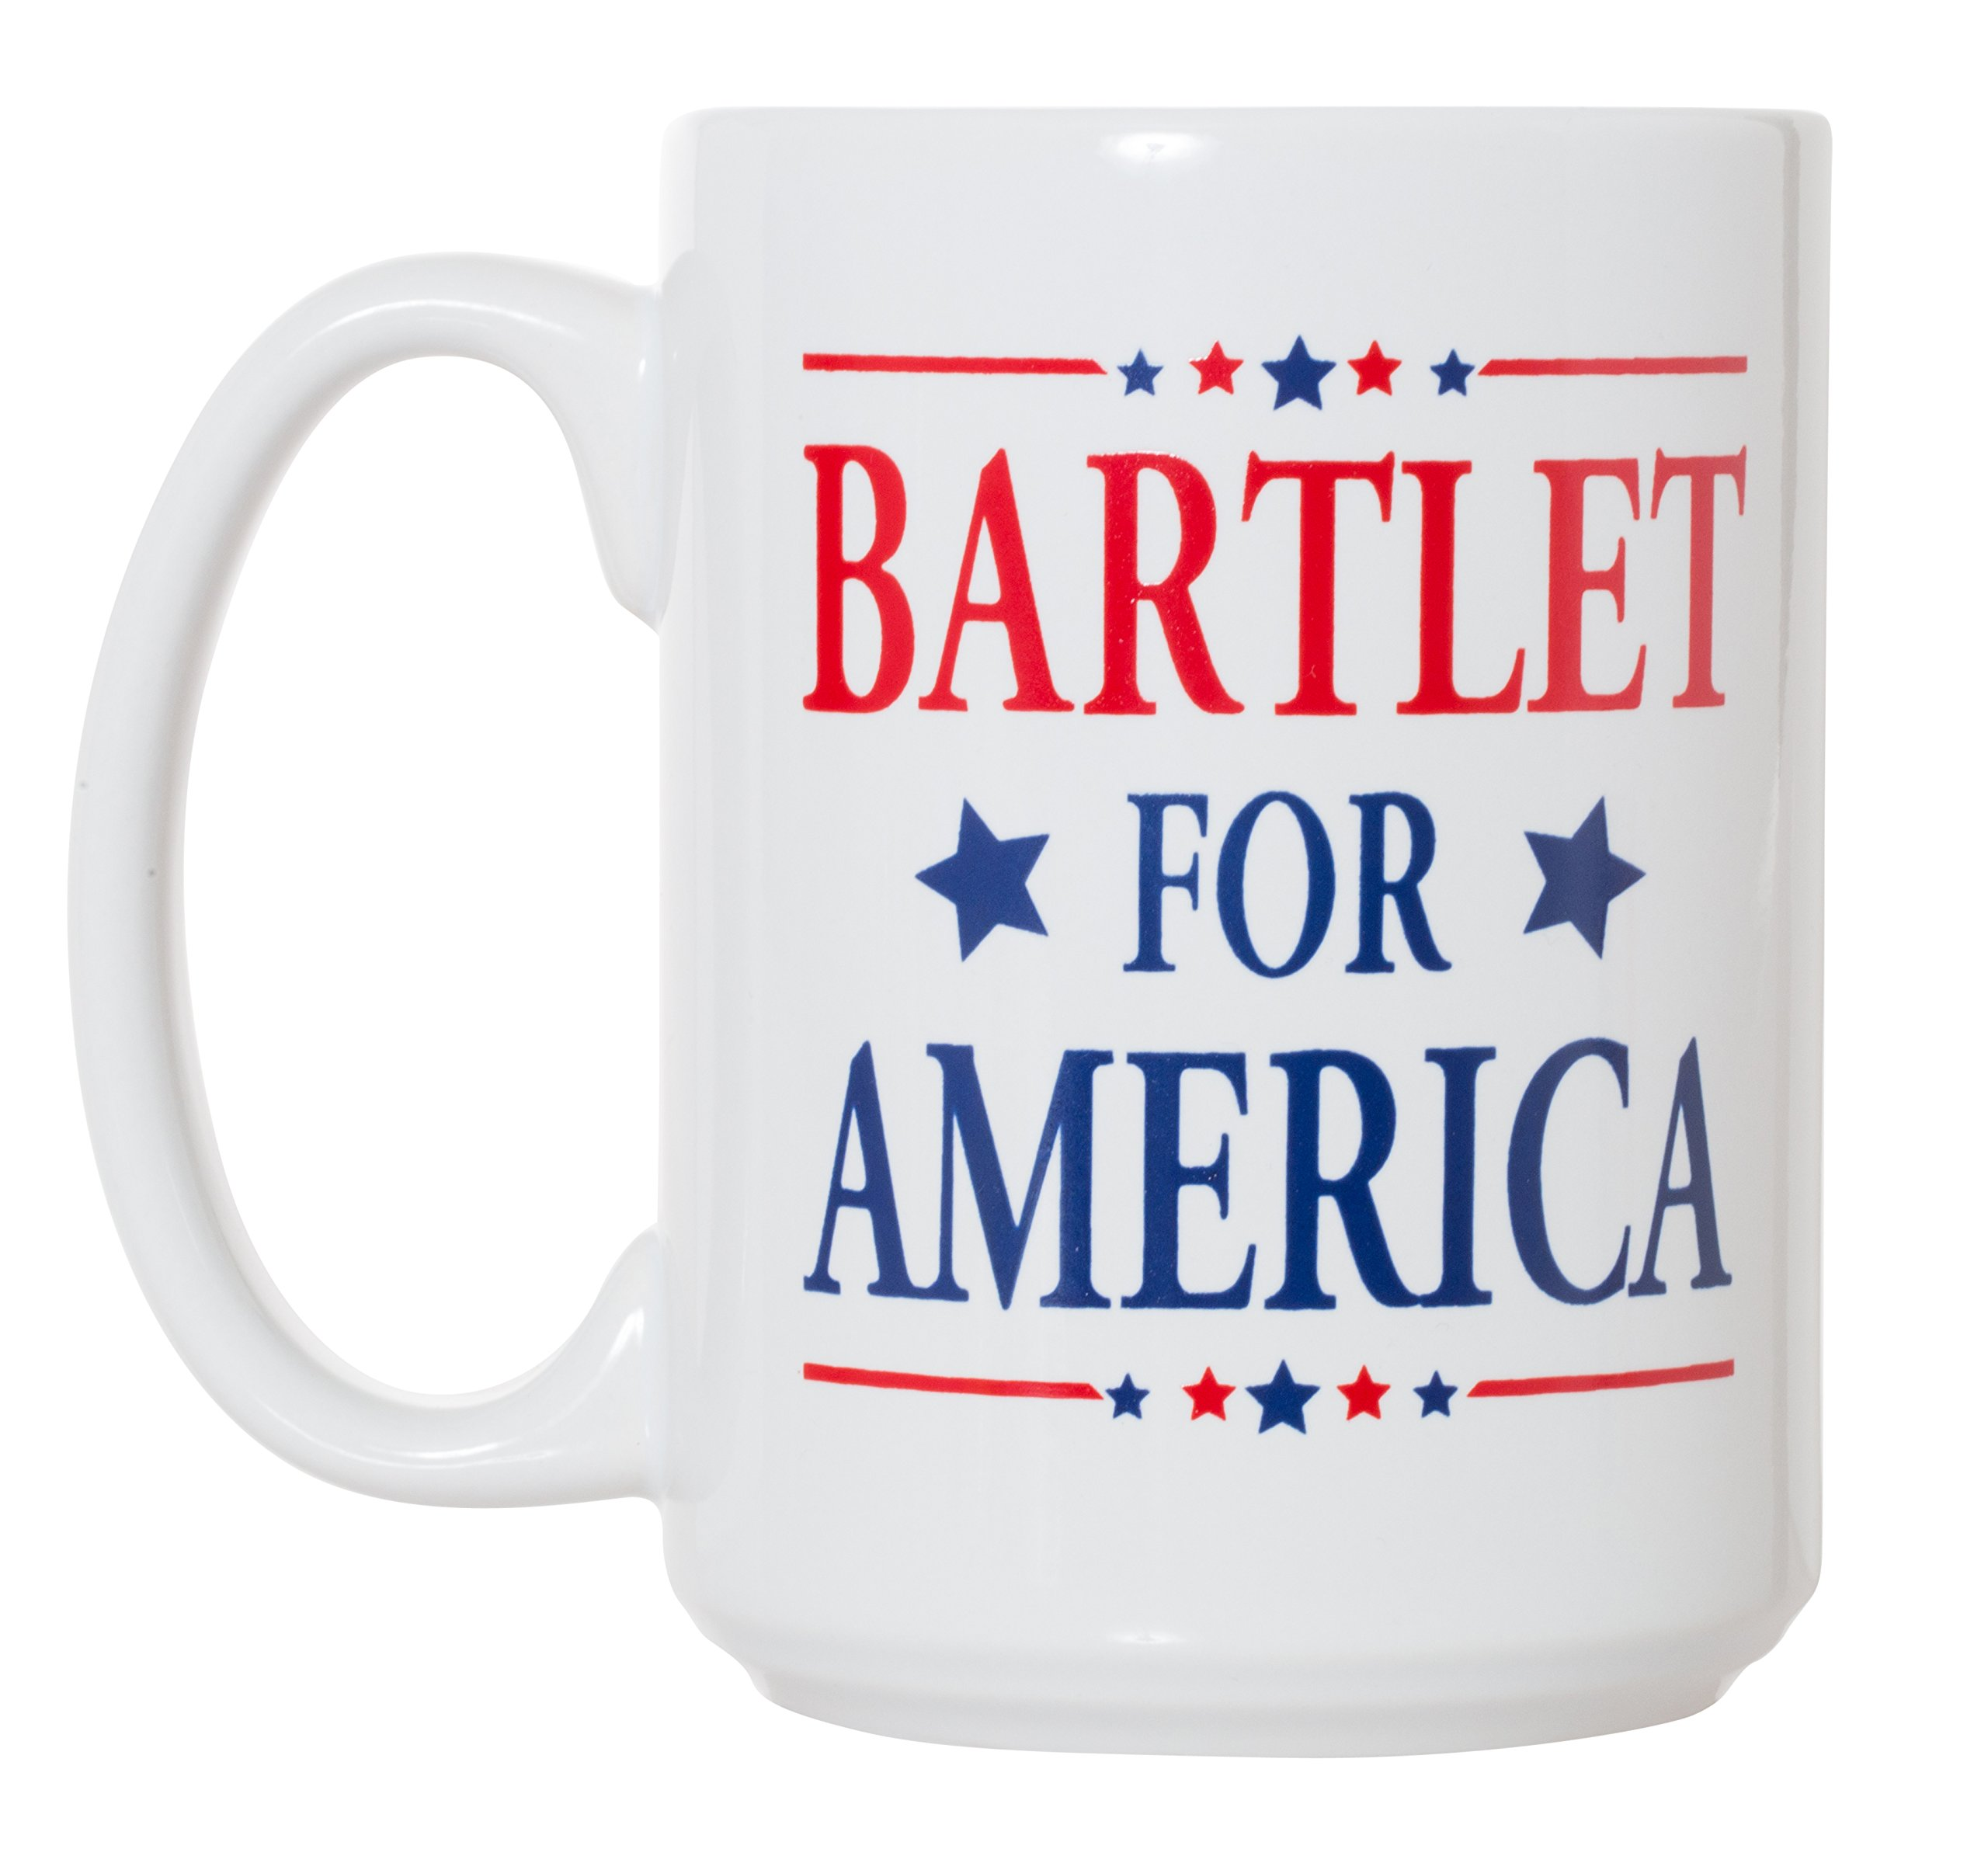 Bartlet for America West Wing Inspired Campaign Mug - 15oz Deluxe Double-Sided Coffee Tea Mug